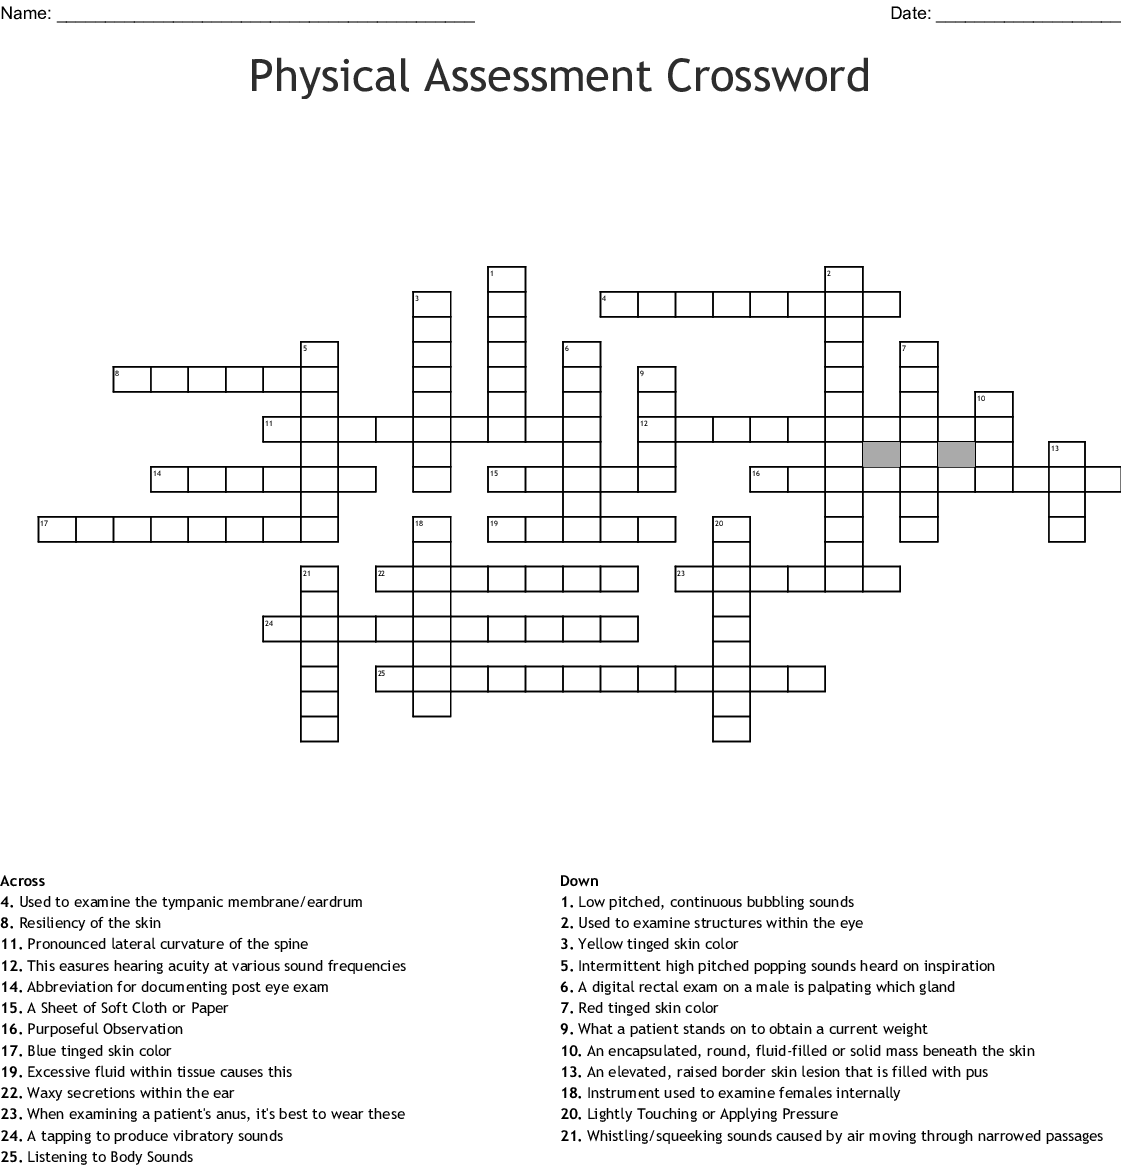 Physical Assessment Crossword Wordmint Prep for a quiz or learn for fun! physical assessment crossword wordmint